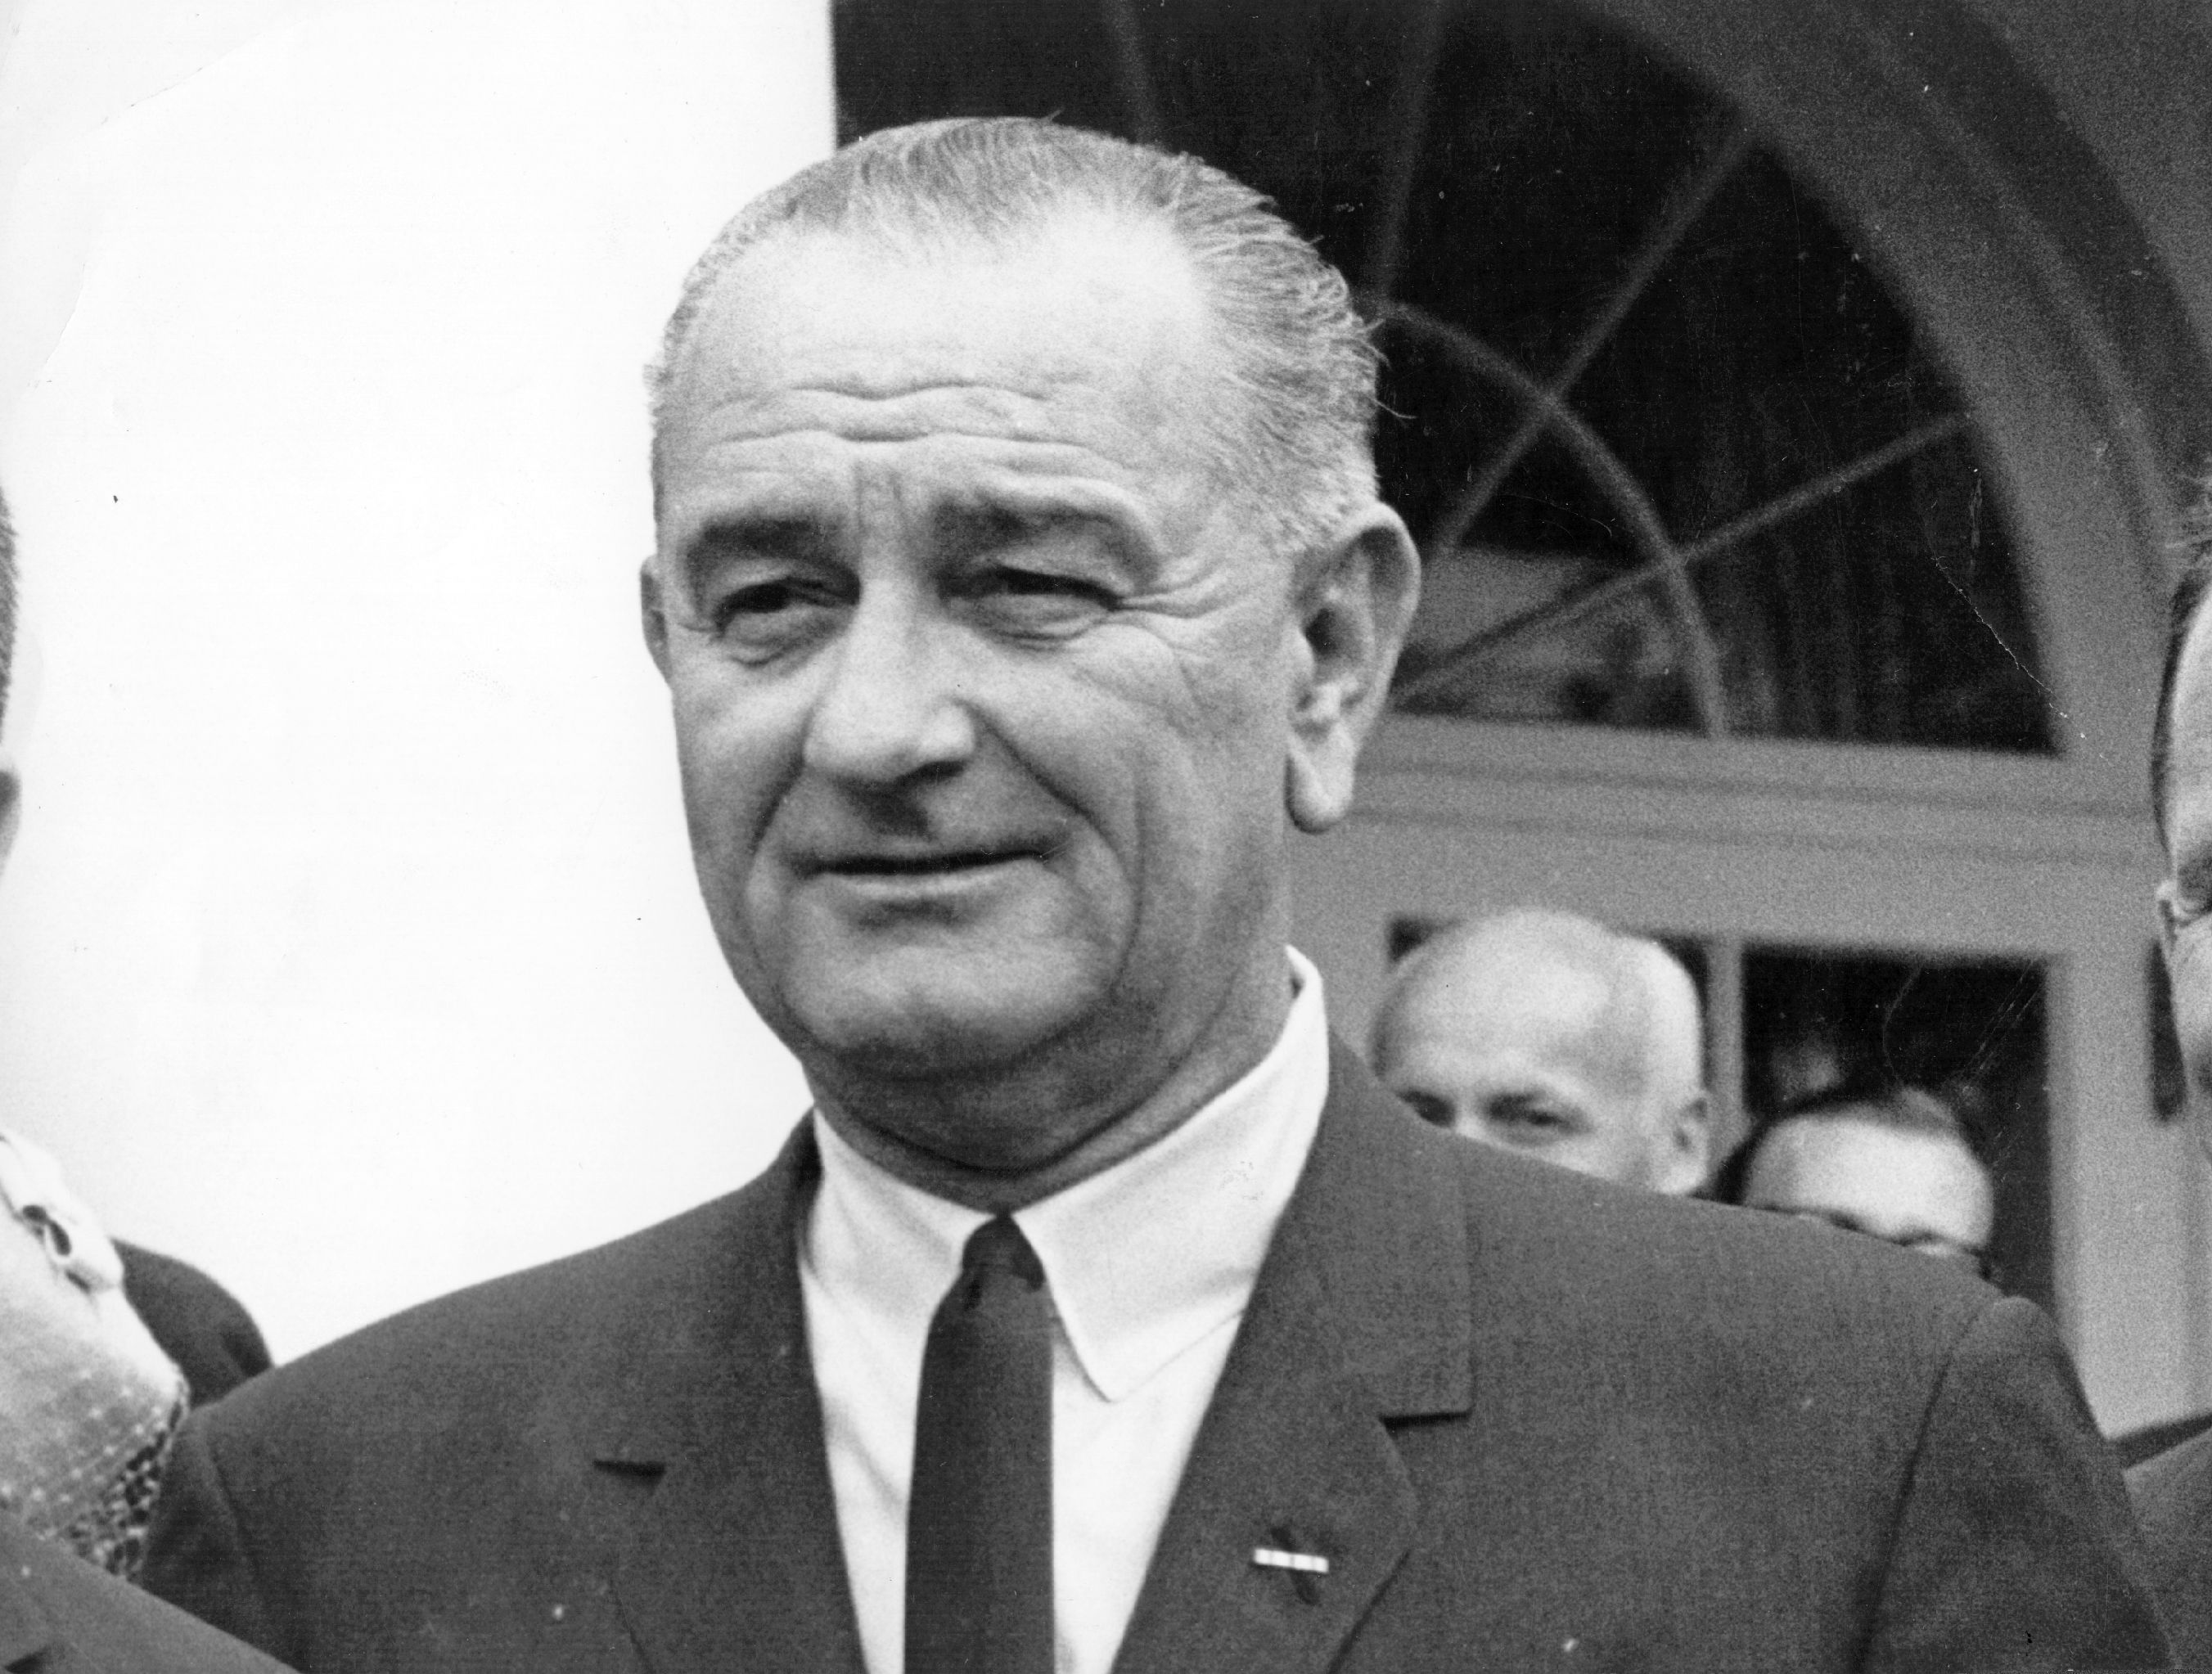 a portrait of lyndon b johnson